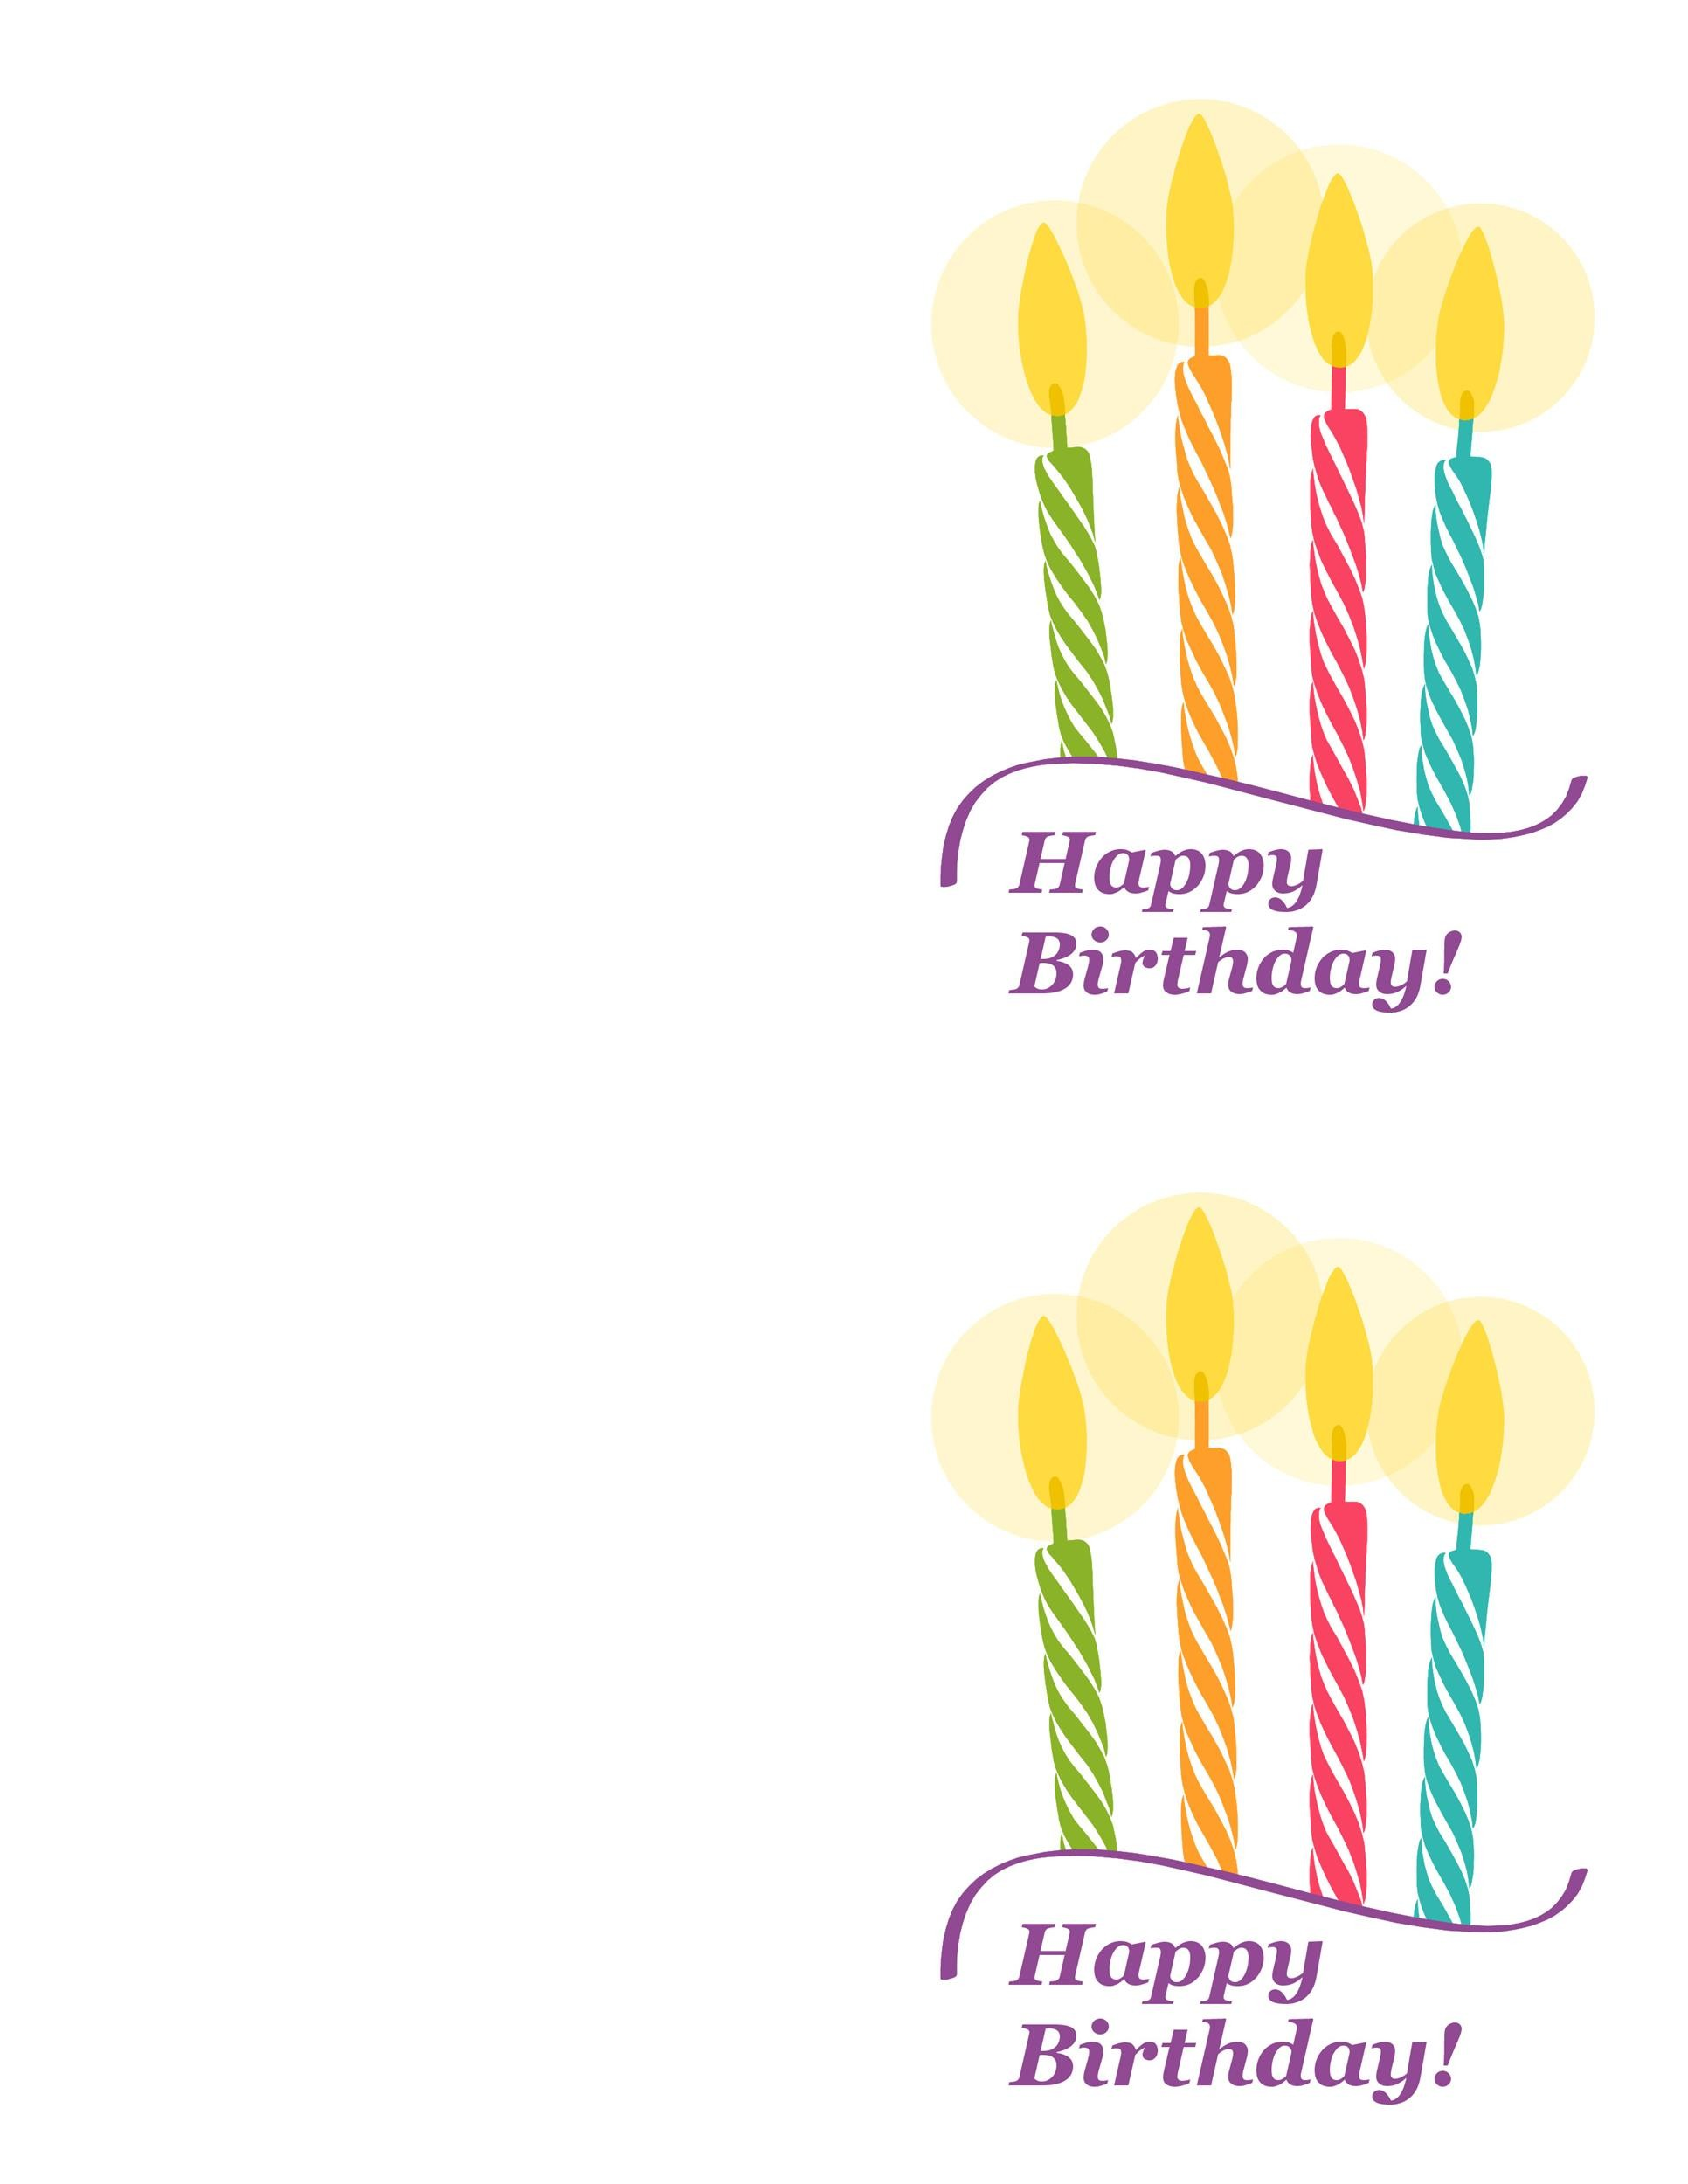 graphic relating to Printable Birthday Cards for Him referred to as 40+ Totally free Birthday Card Templates ᐅ Template Lab